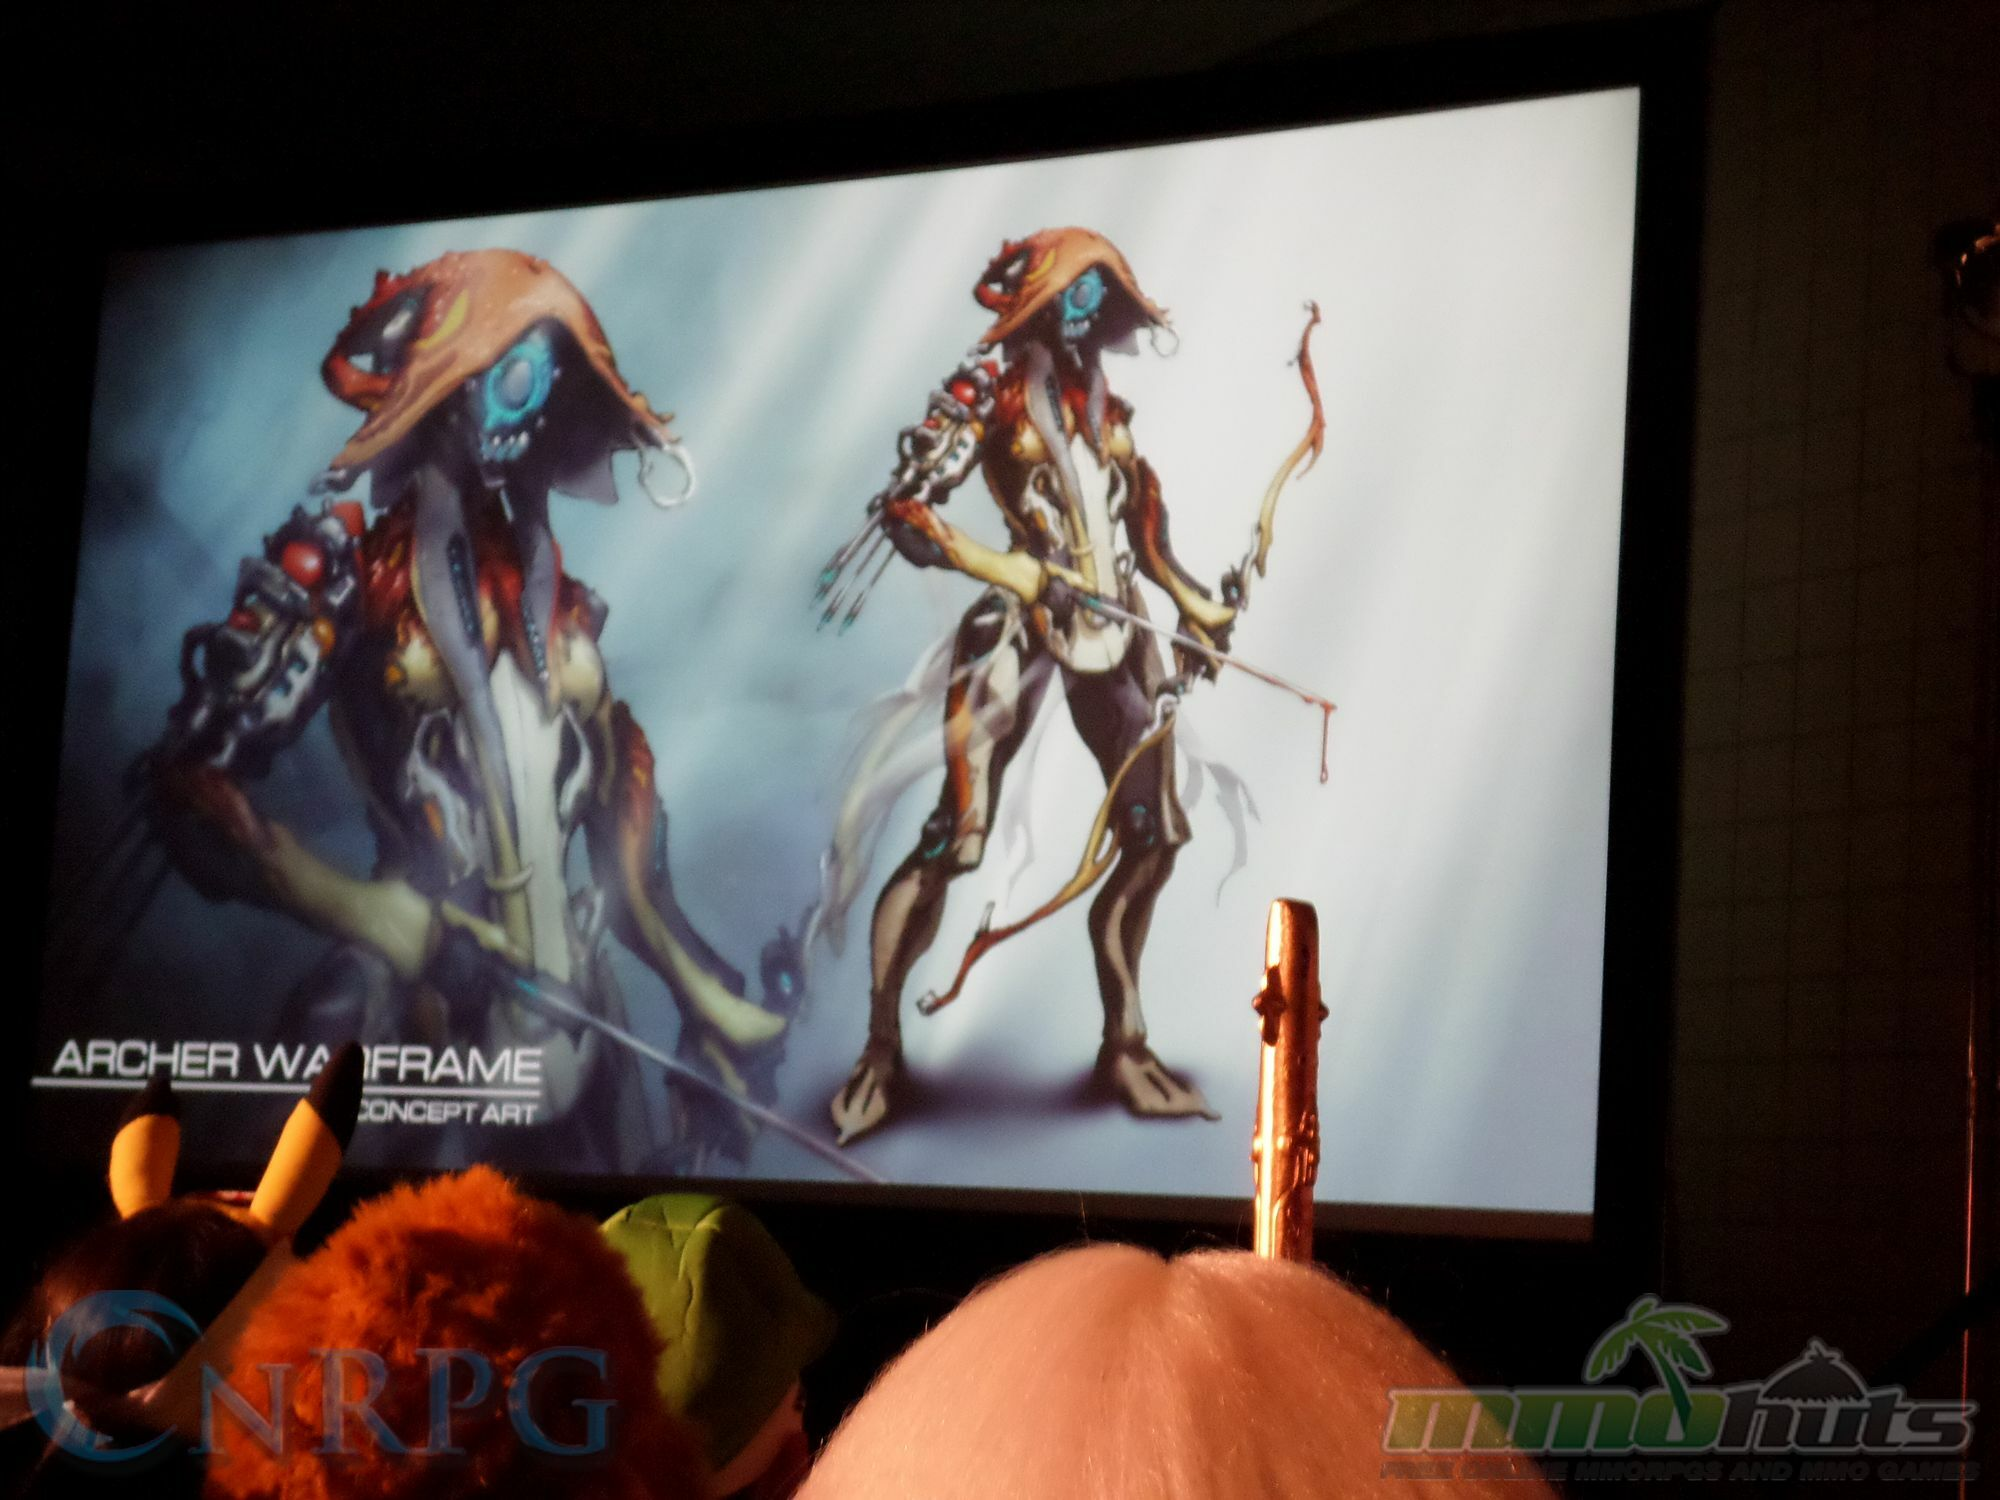 NYCC 2015 Day 3 Warframe Archer